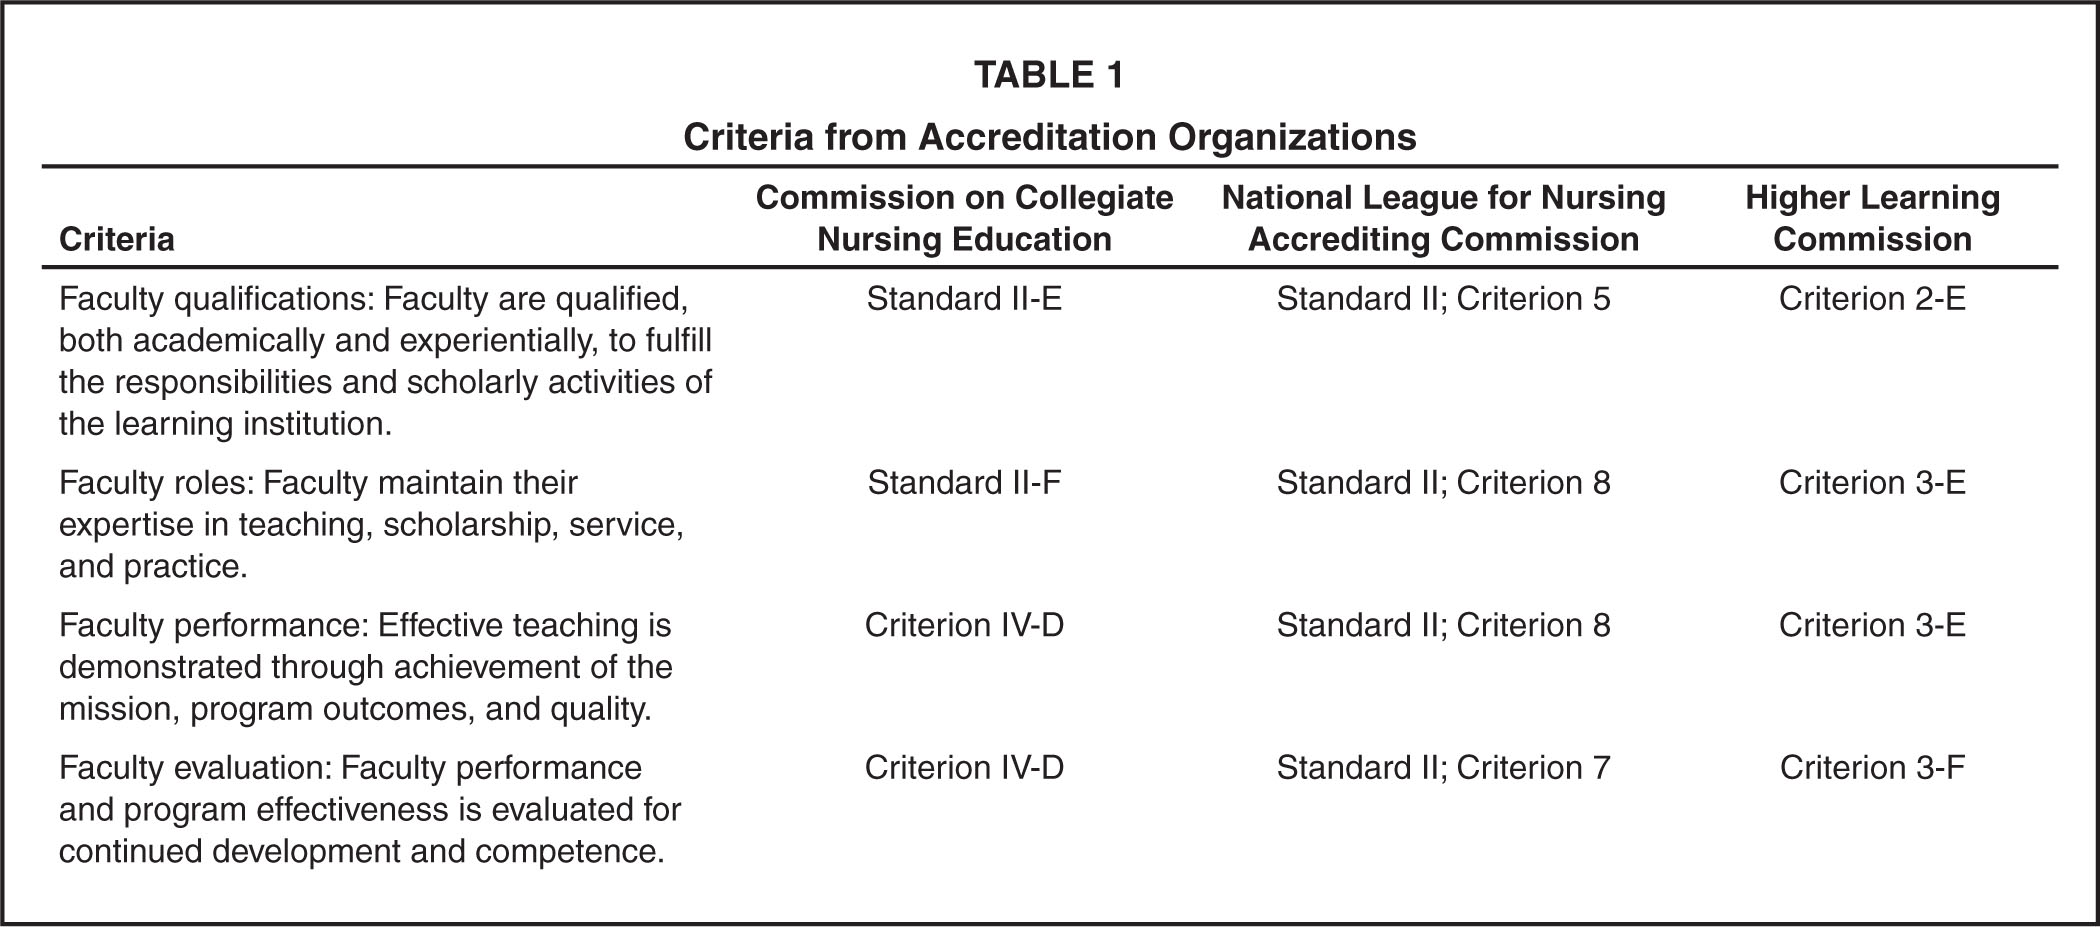 Criteria from Accreditation Organizations